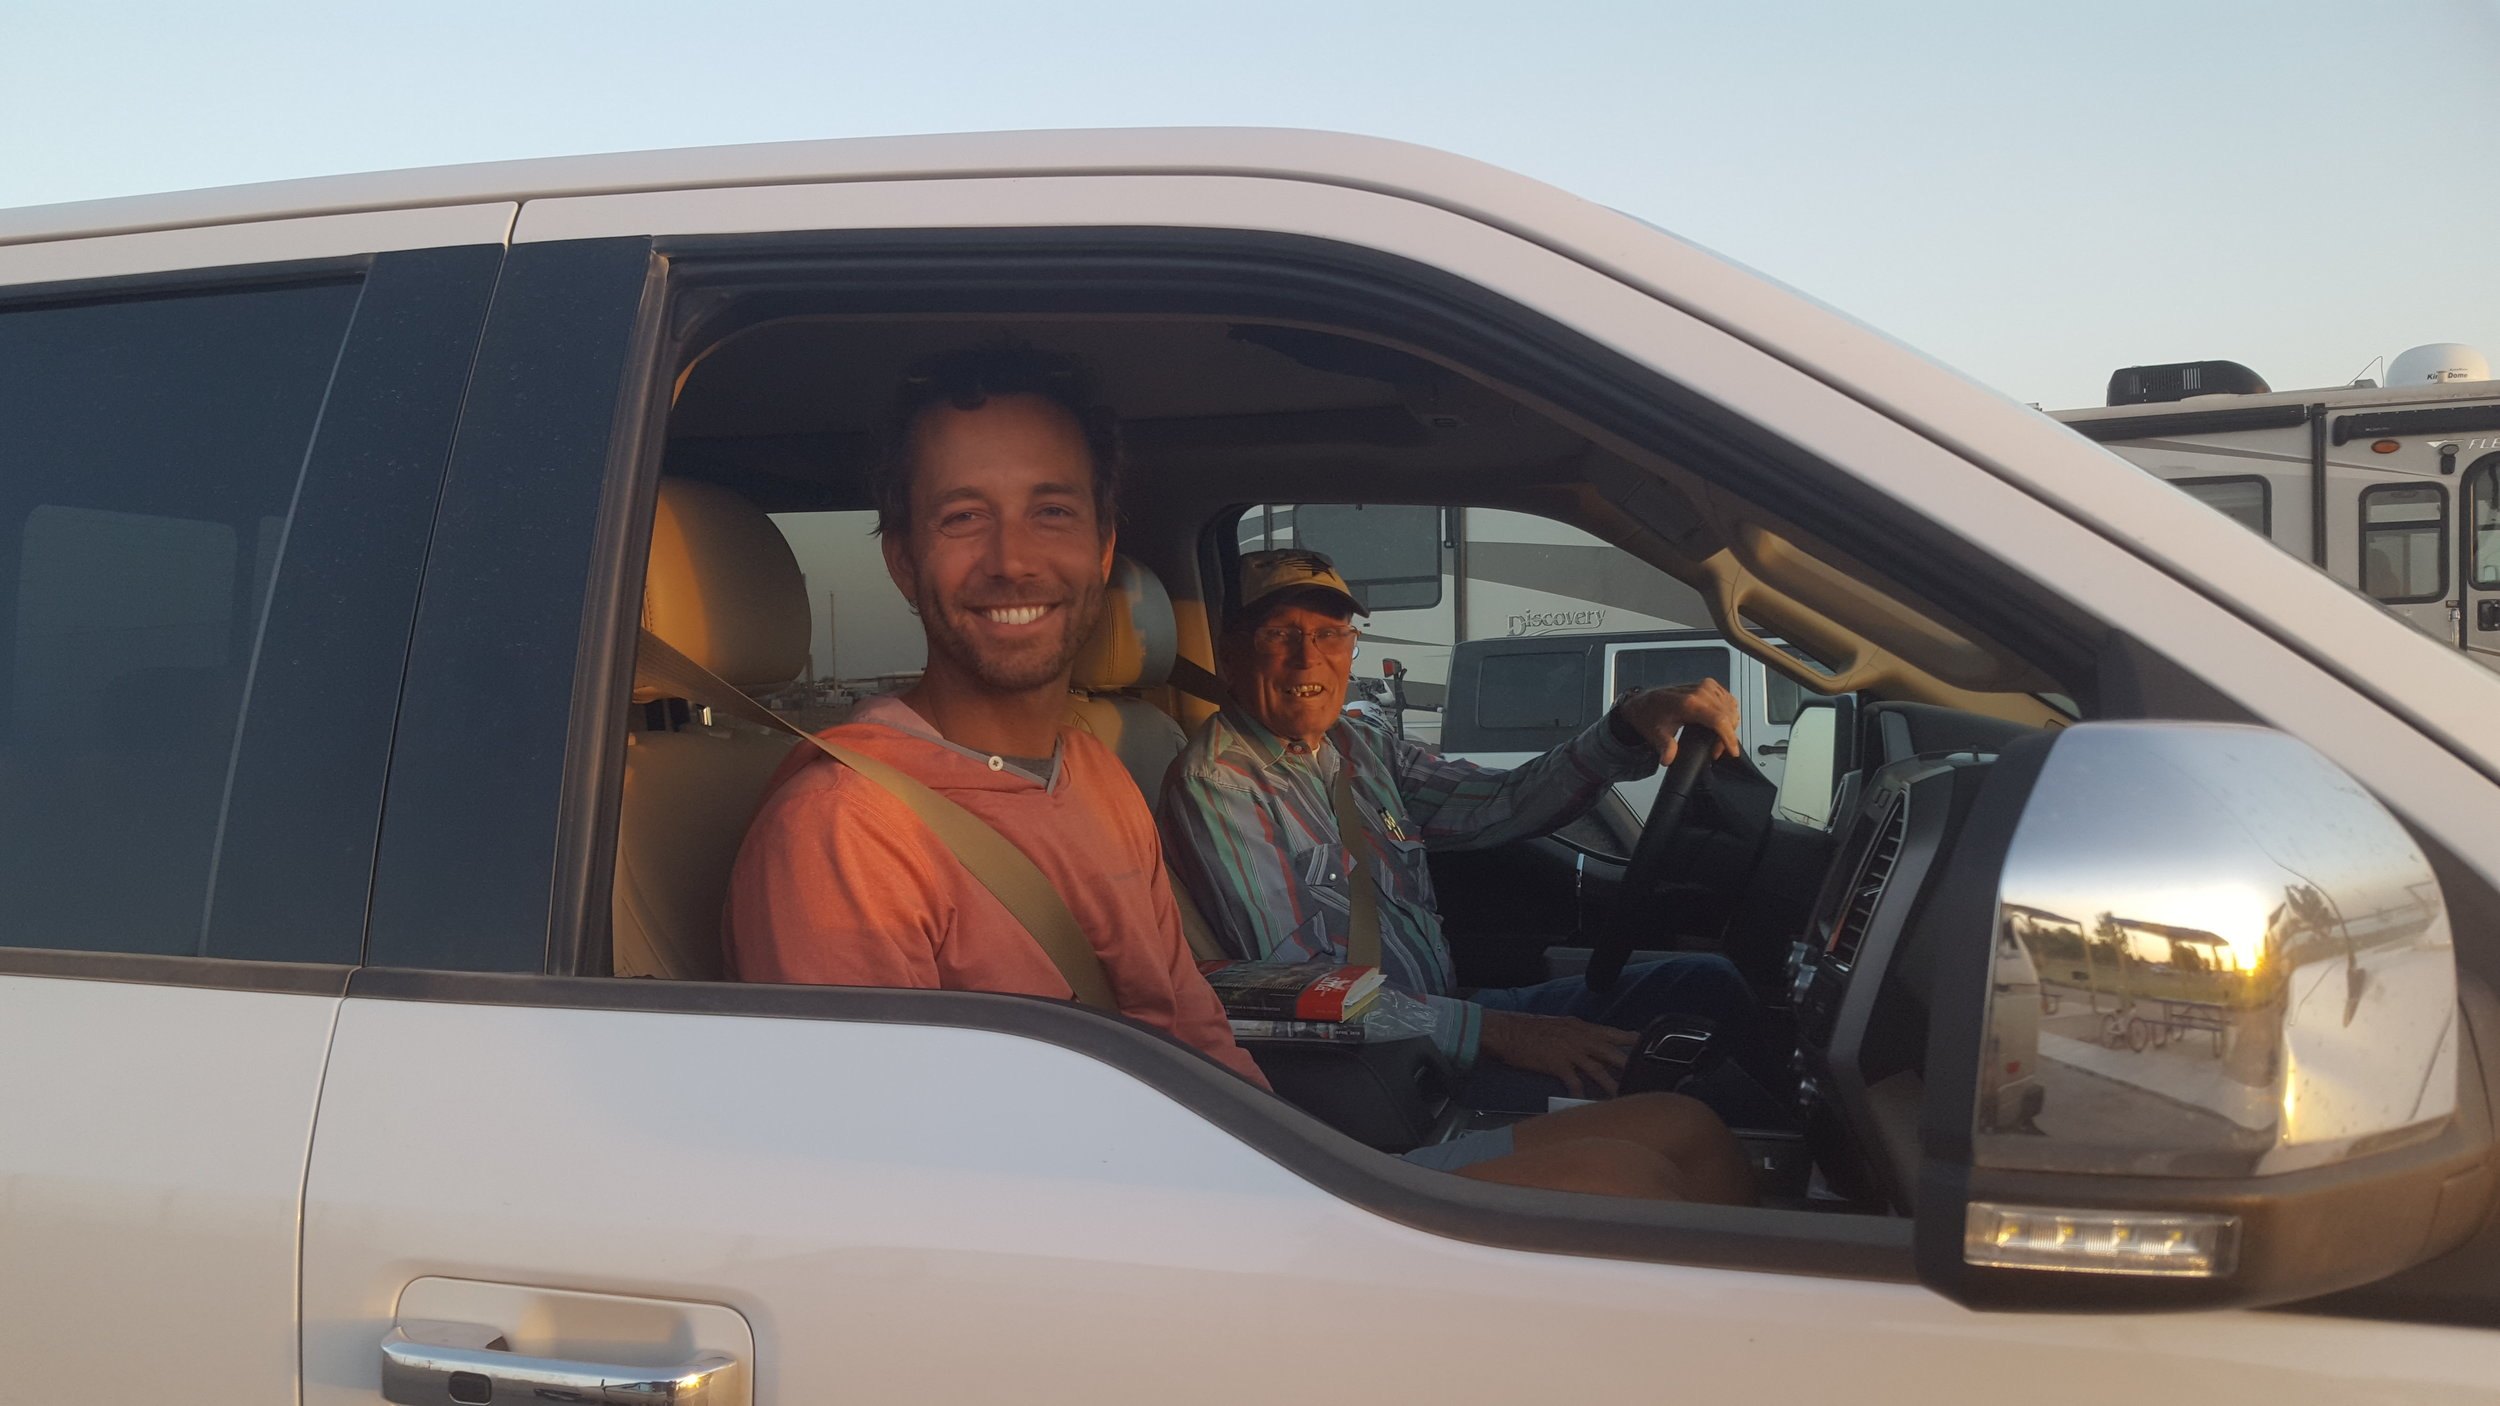 Chip and Gene after their joy ride around Jal, NM.